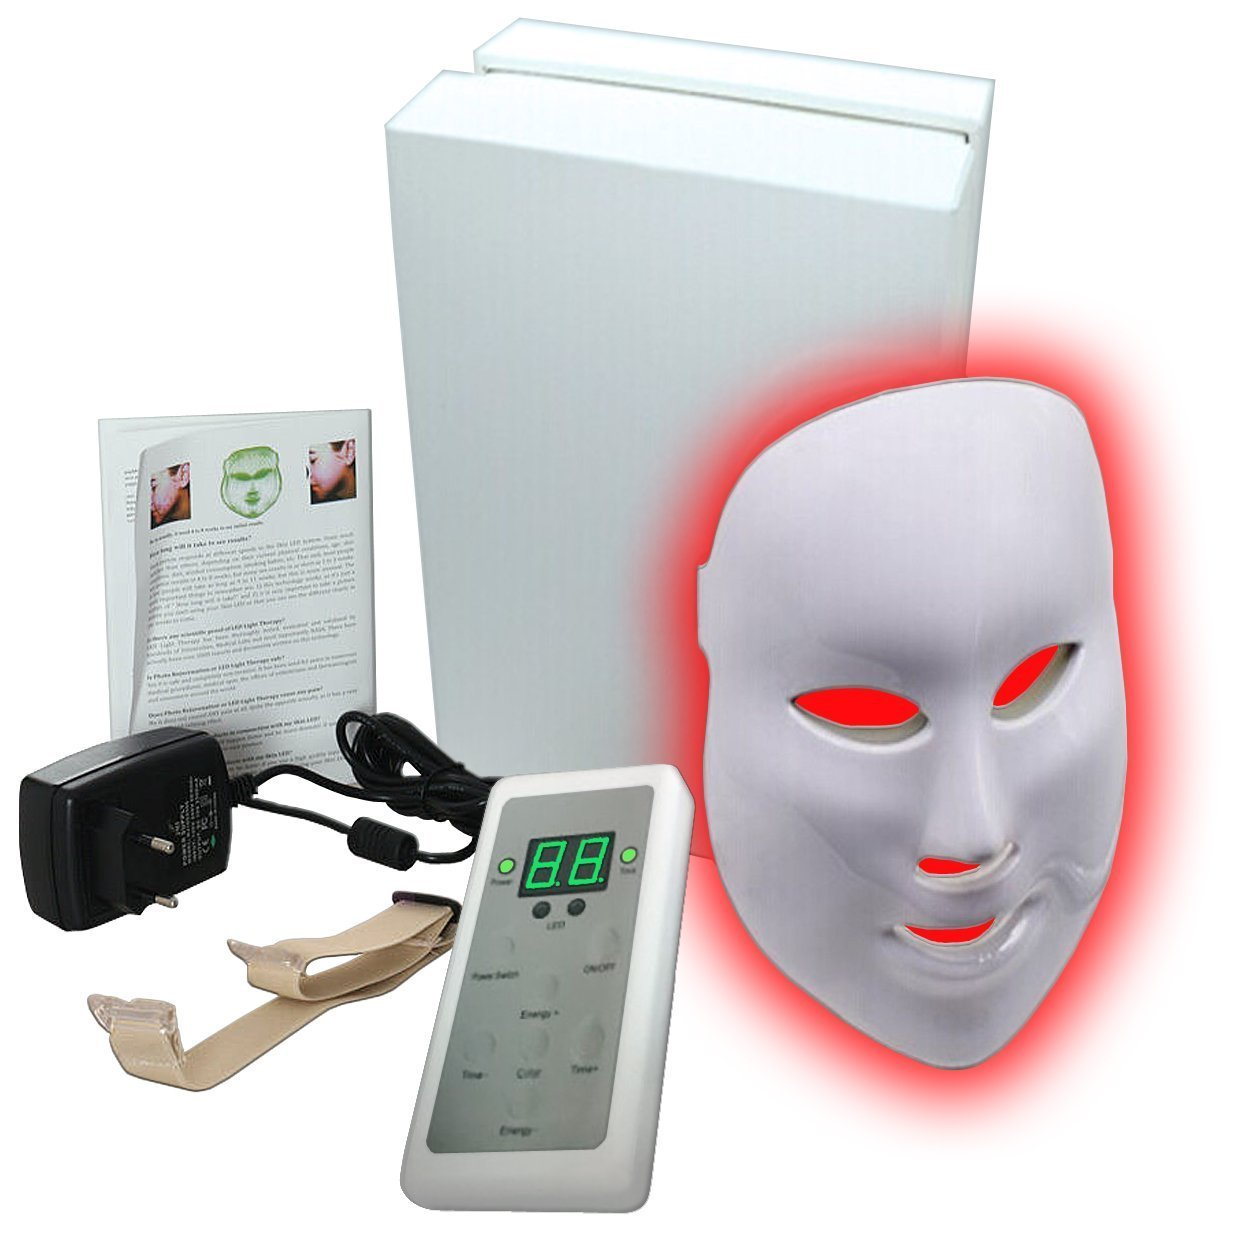 7 Color LED Mask Photon Light Skin Rejuvenation Therapy Facial Mask Photon Photodynamics Beauty Facial Peels Machine Skin Care anti acne pigment removal photon led light therapy facial beauty salon skin care treatment massager machine